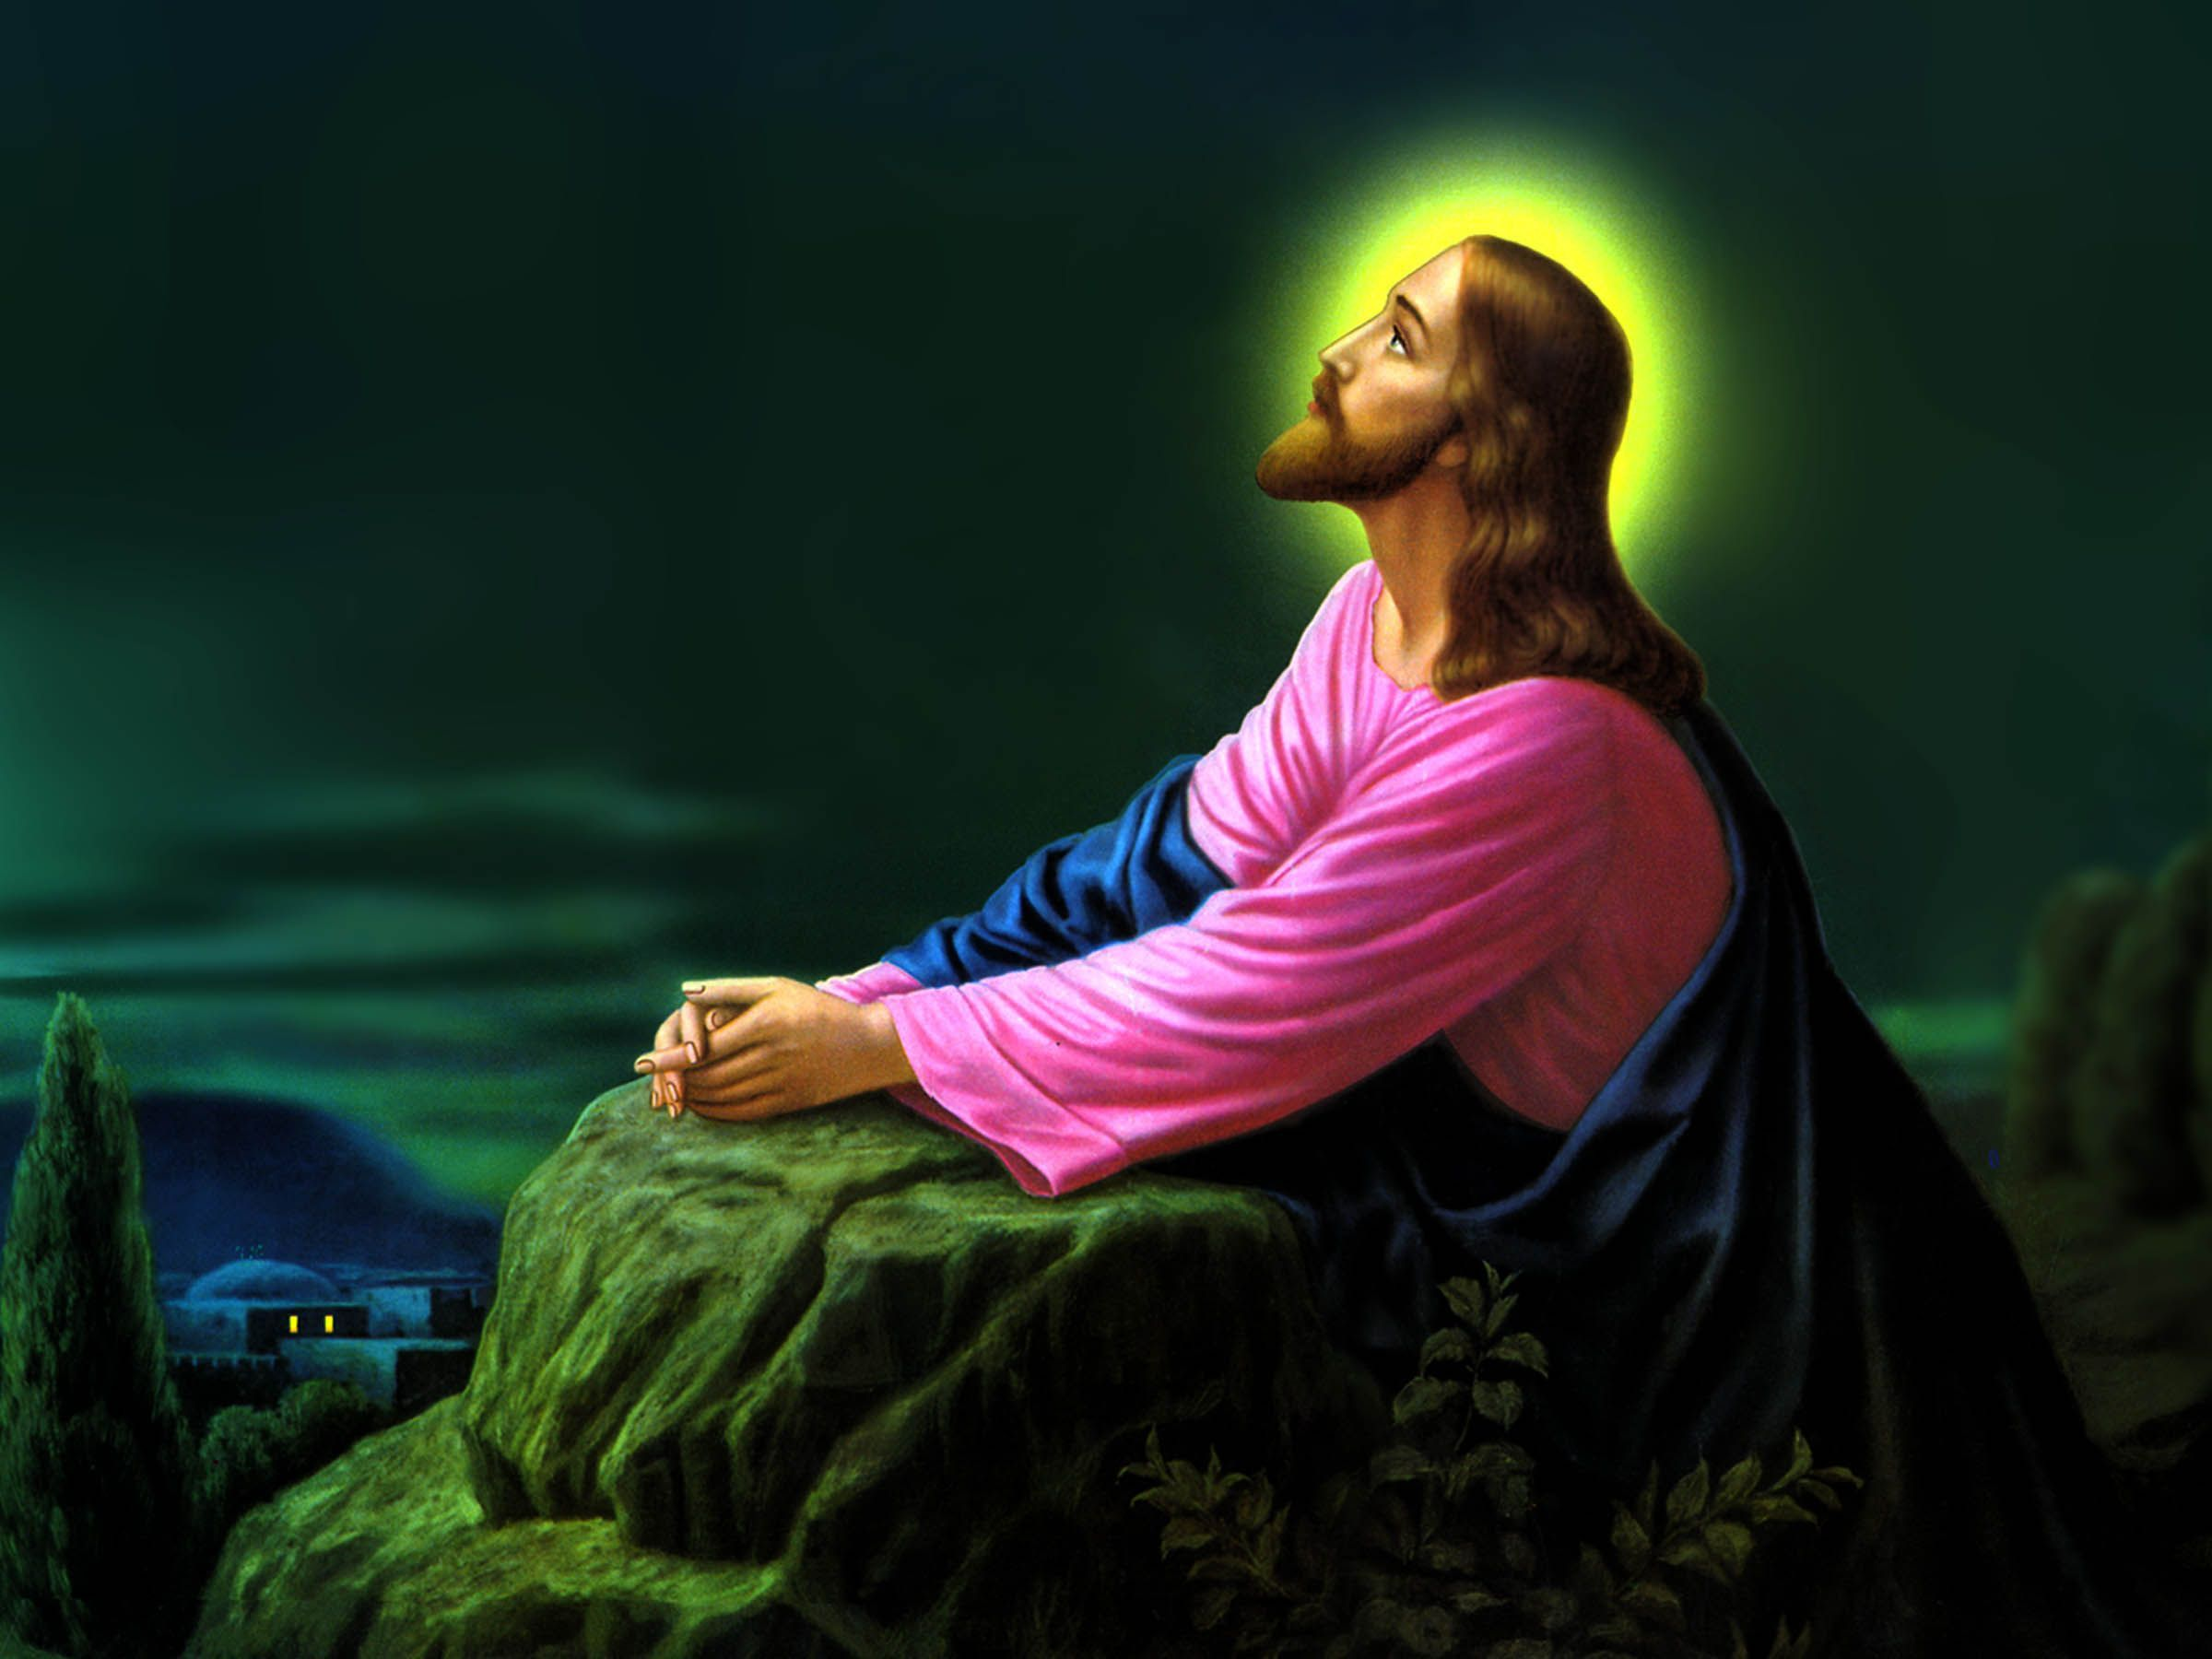 Jesus HD Wallpapers Free Download